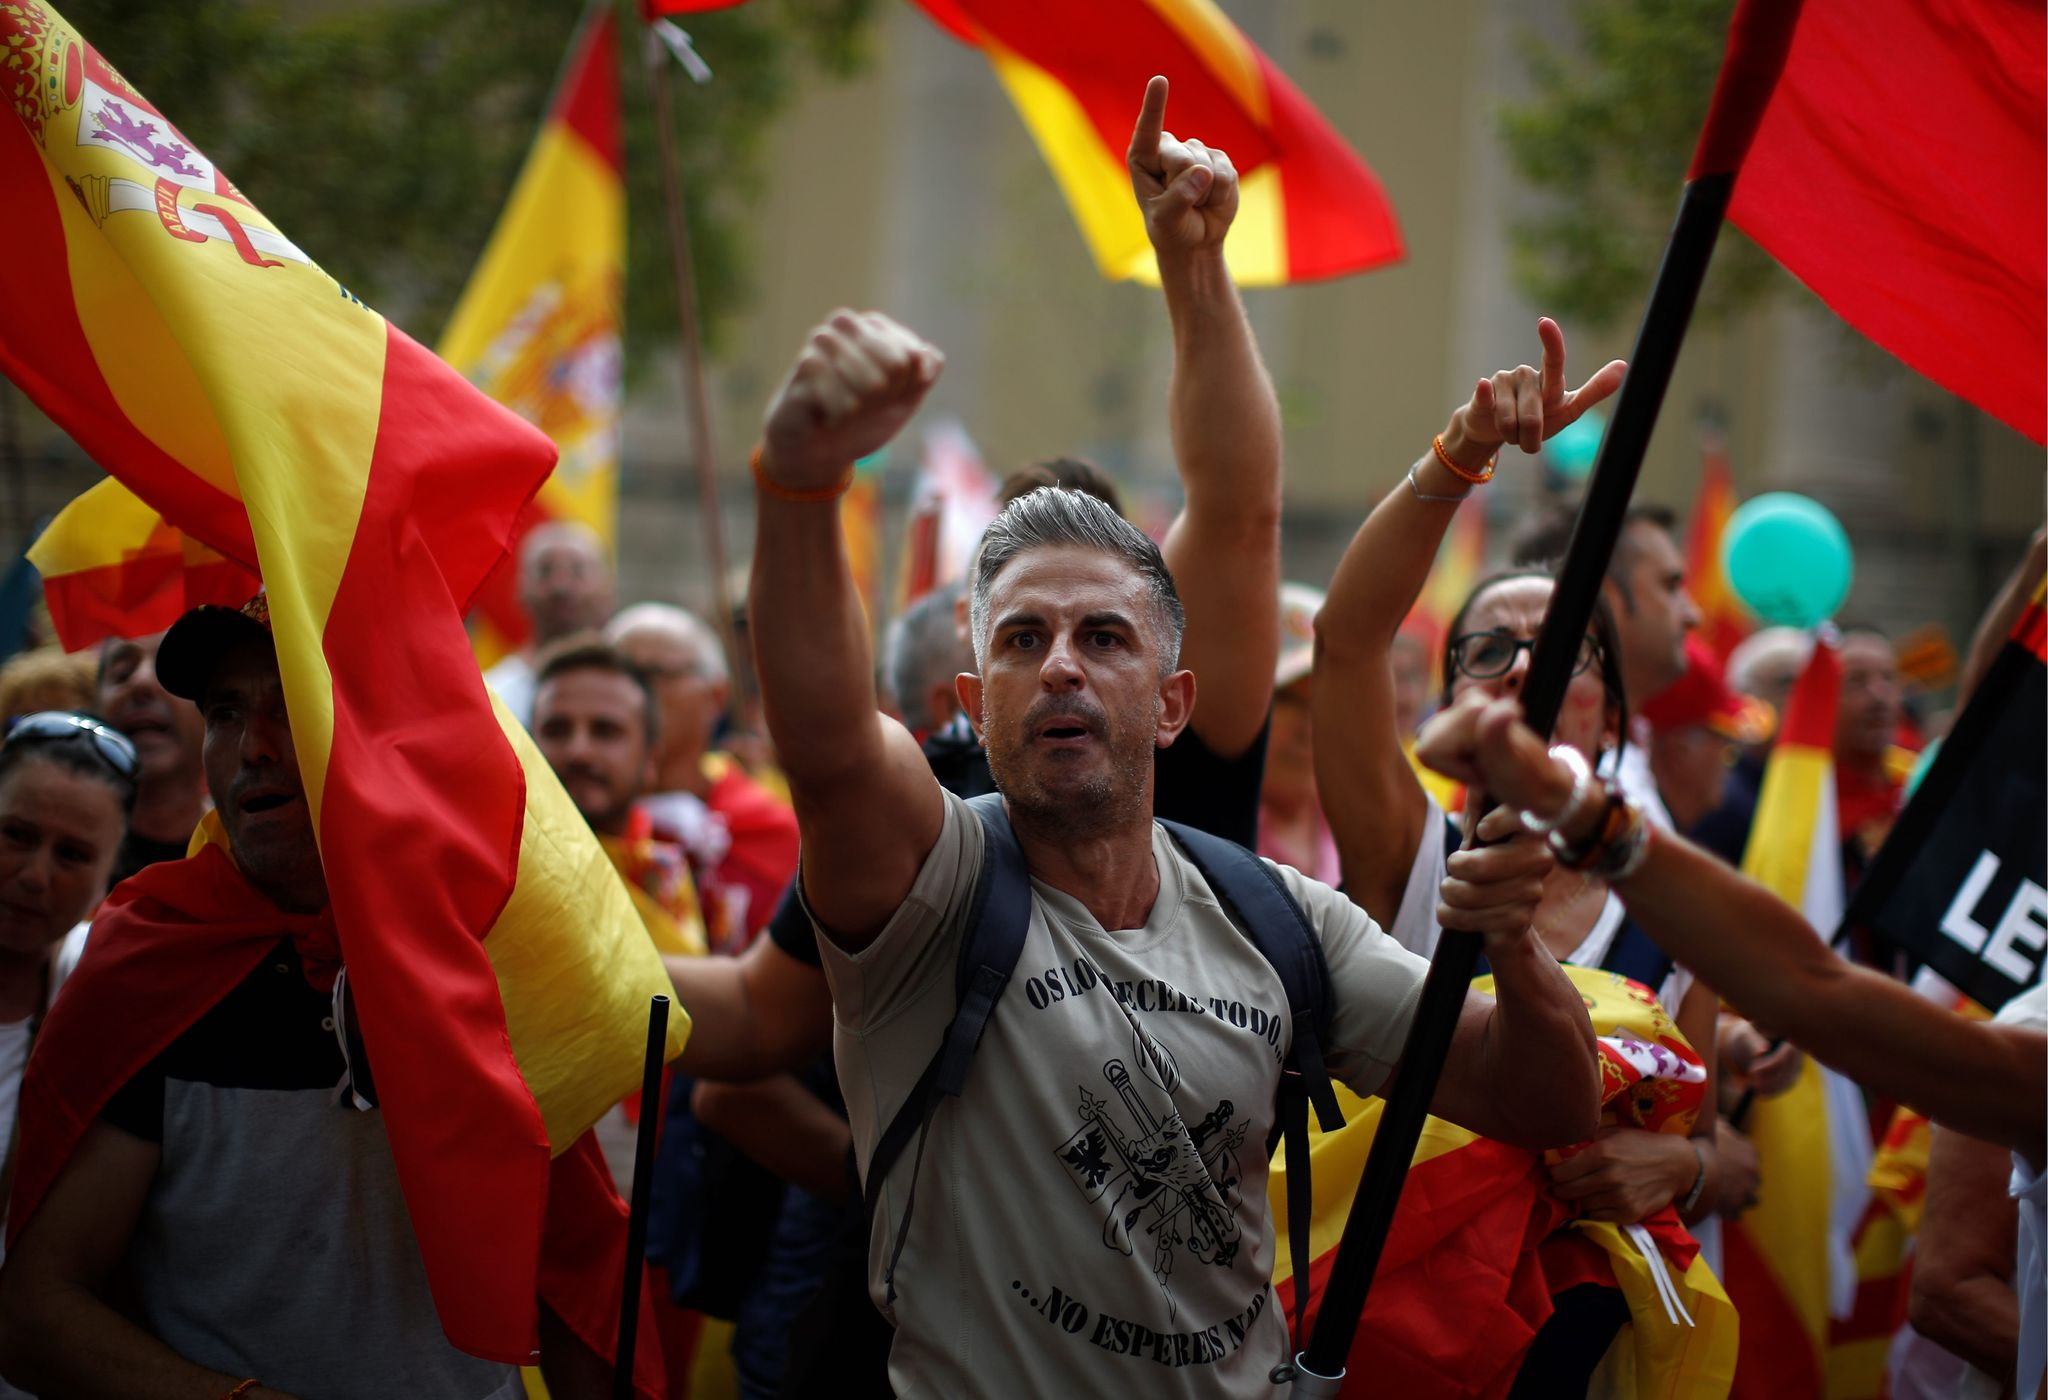 Catalonia separatists seek break with Spain, Barcelona shutdown threatened - Washington Times